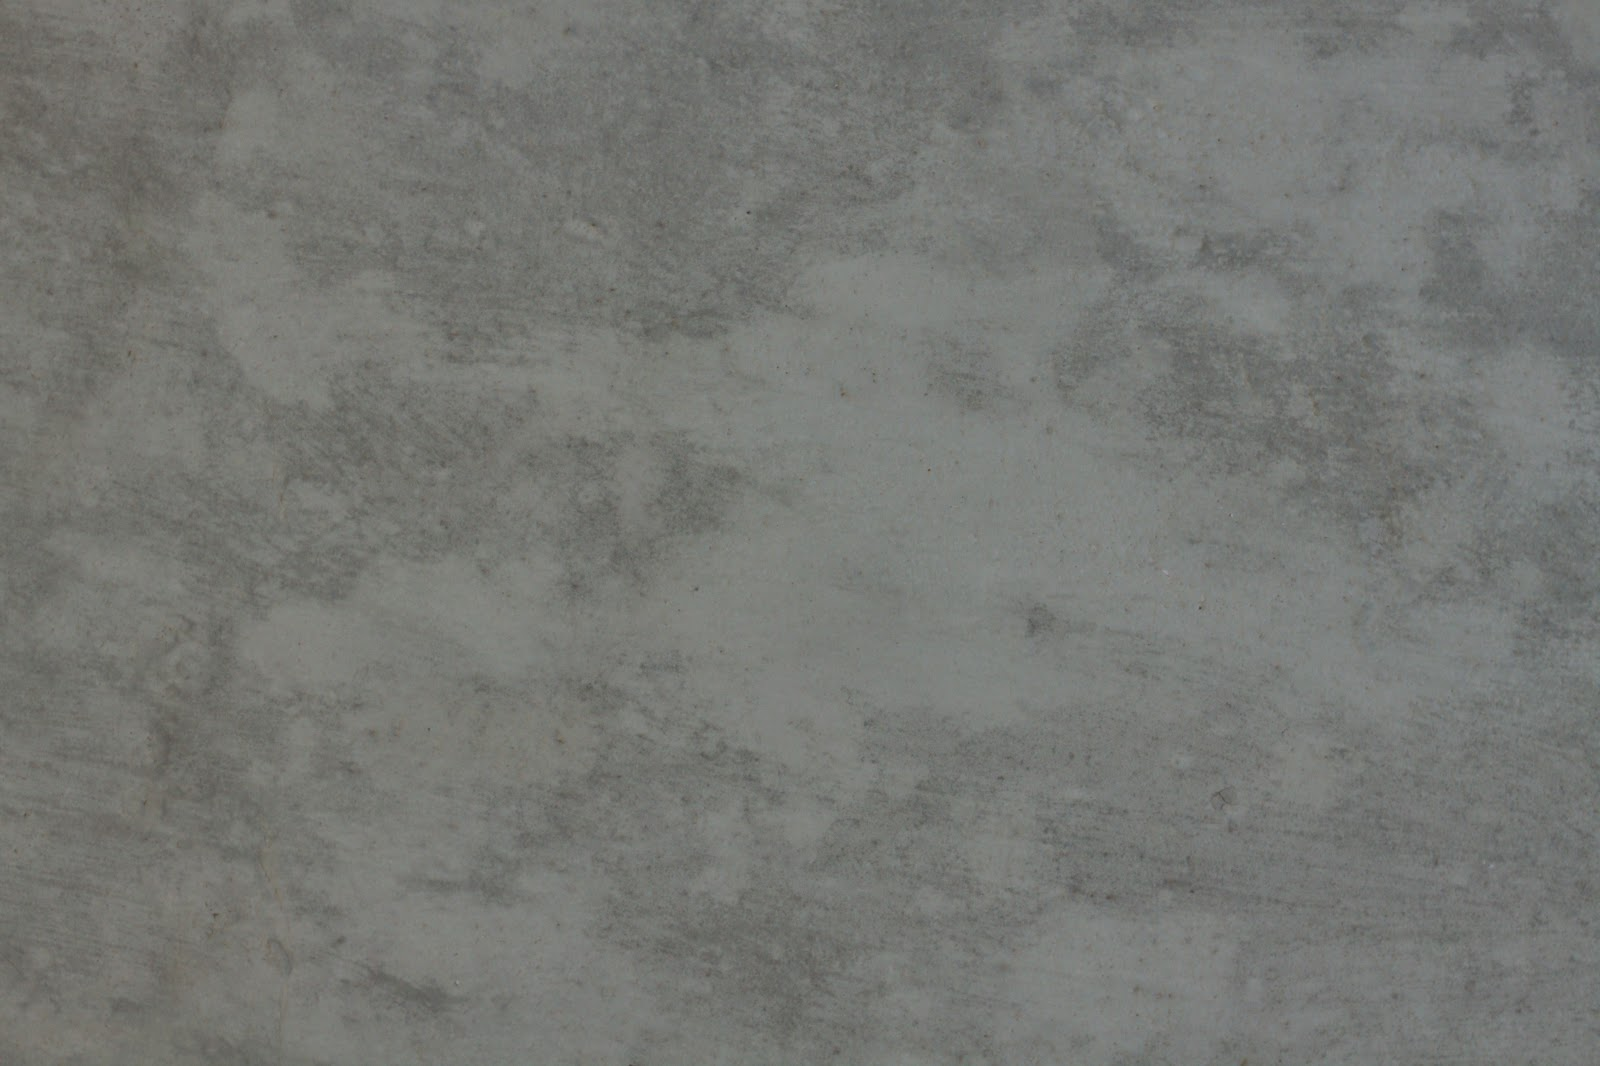 concrete floor texture, HIGH RESOLUTION TEXTURES: (CONCRETE 11) granite wall